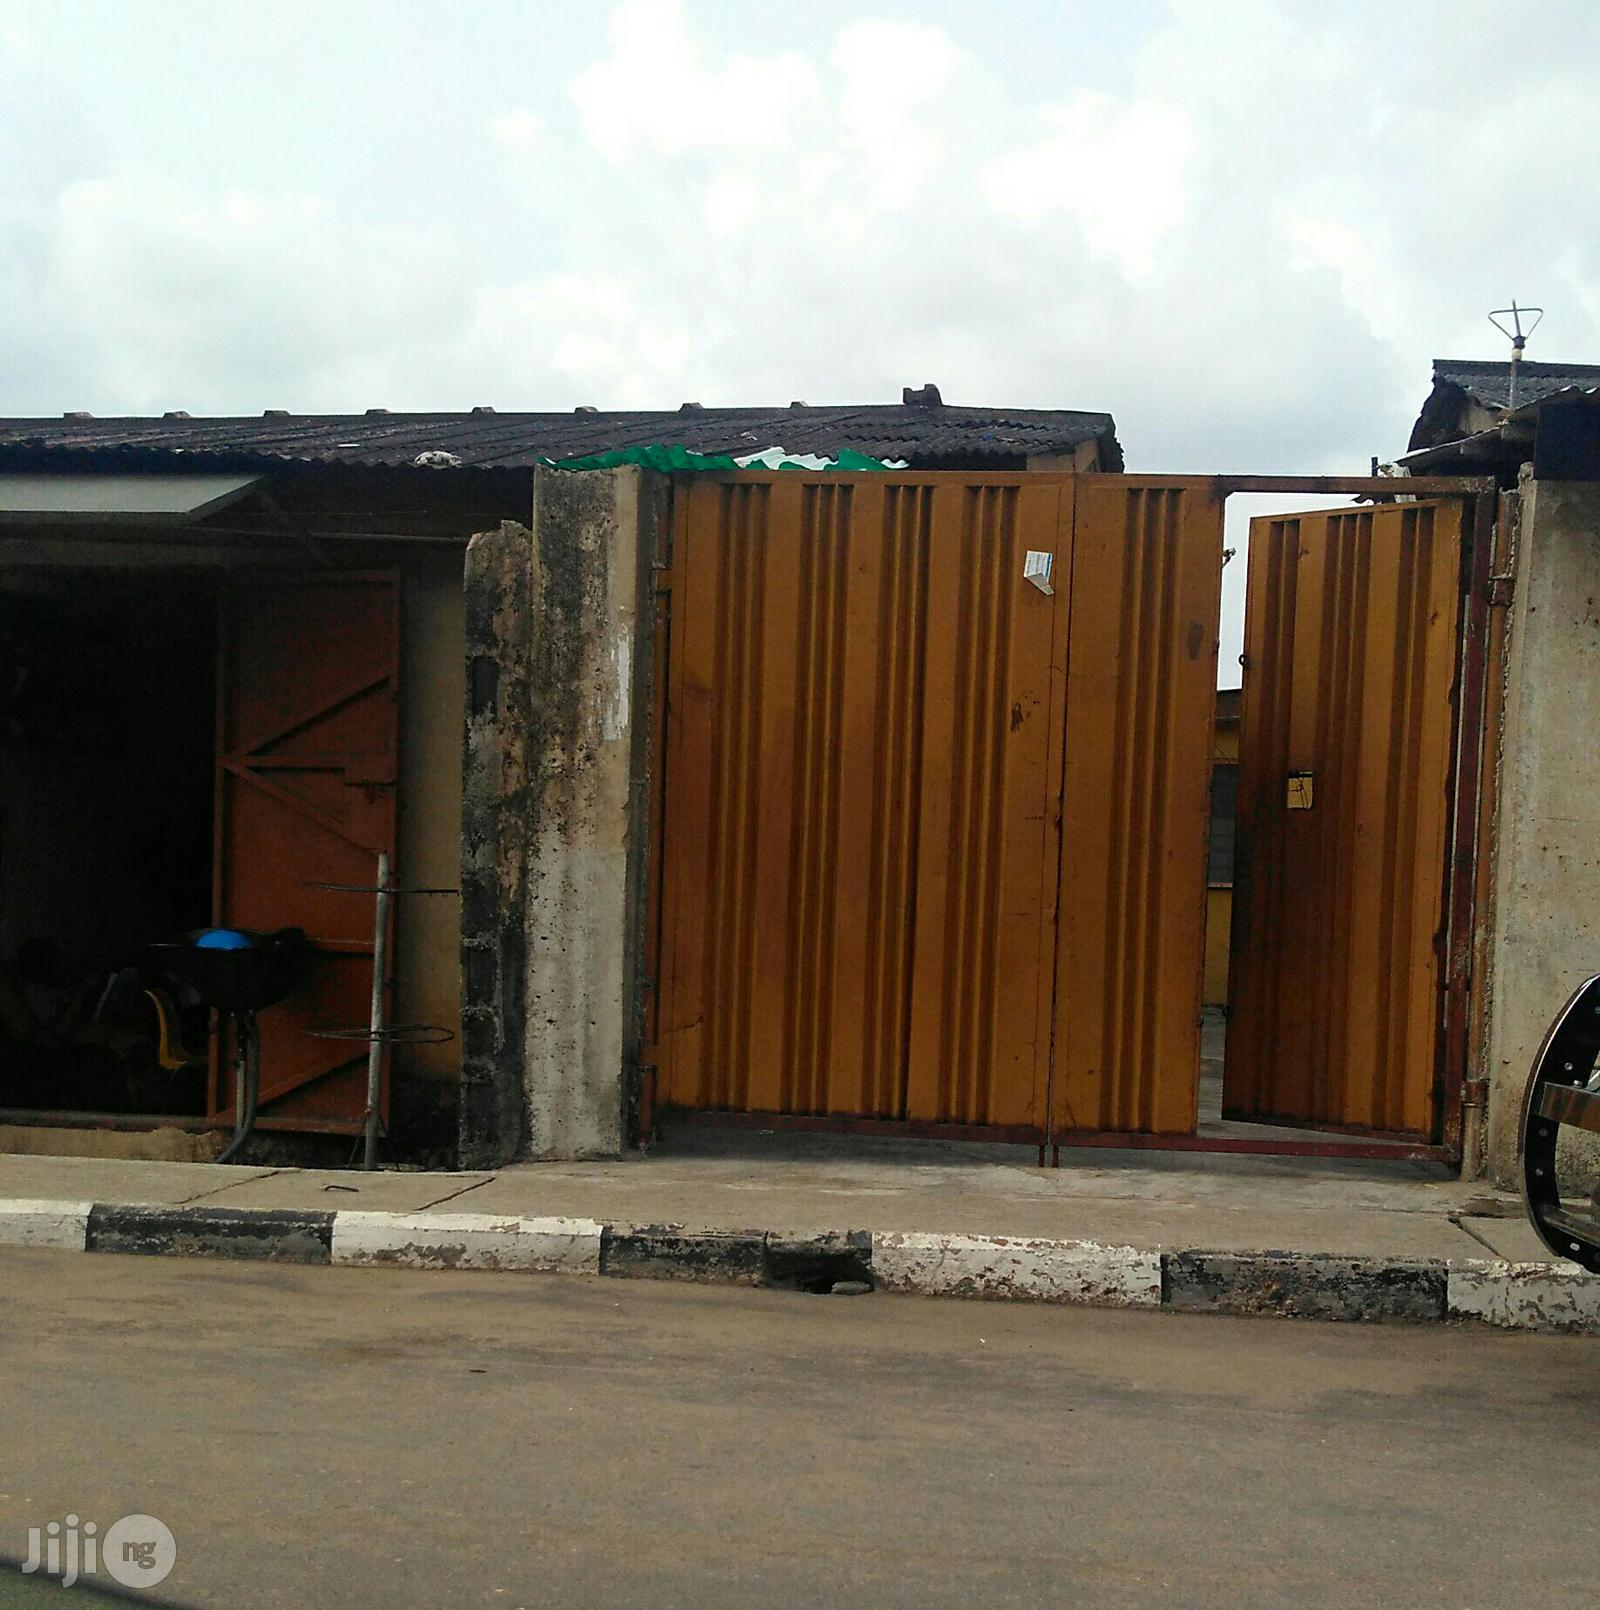 Three Bedrooms Bungalow For Sale At Surulere Lagos State | Houses & Apartments For Sale for sale in Surulere, Lagos State, Nigeria